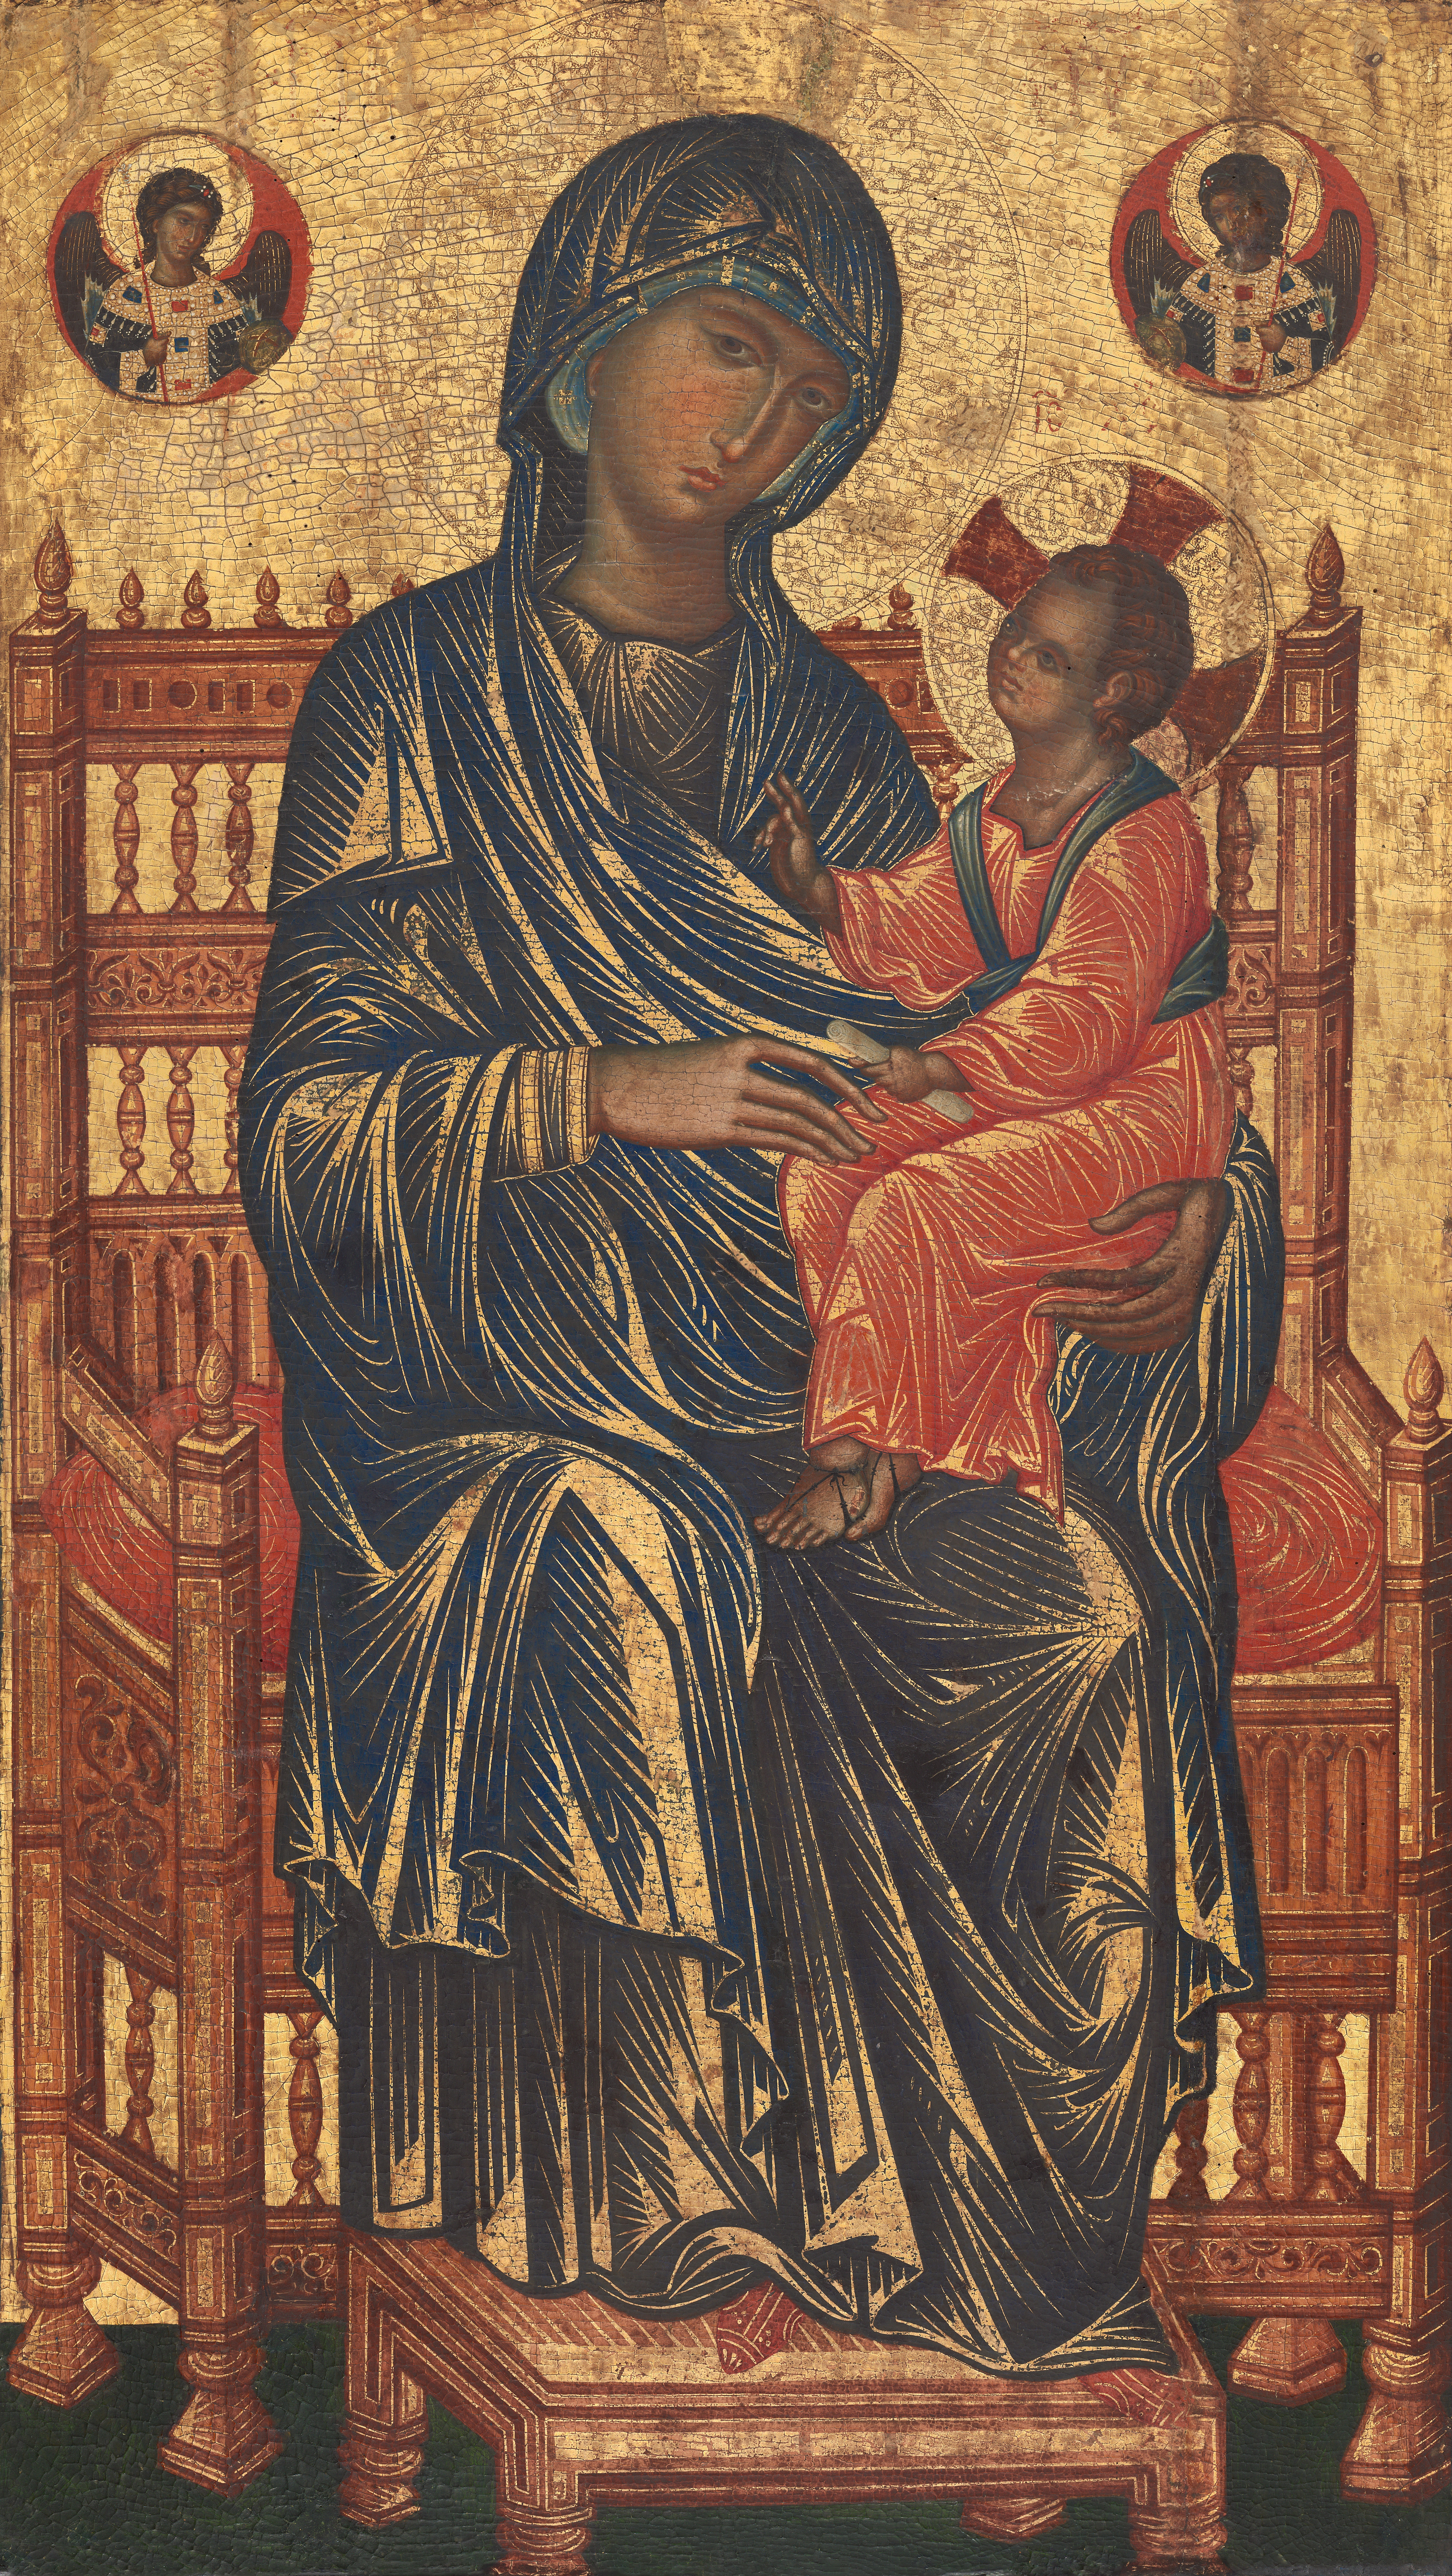 Madonna with Child Enthroned tempera on poplar wood in the Italo-Byzantine style, between circa 1250 and circa 1275 Currently in the collections of the National Gallery of Art, Washington, D.C.